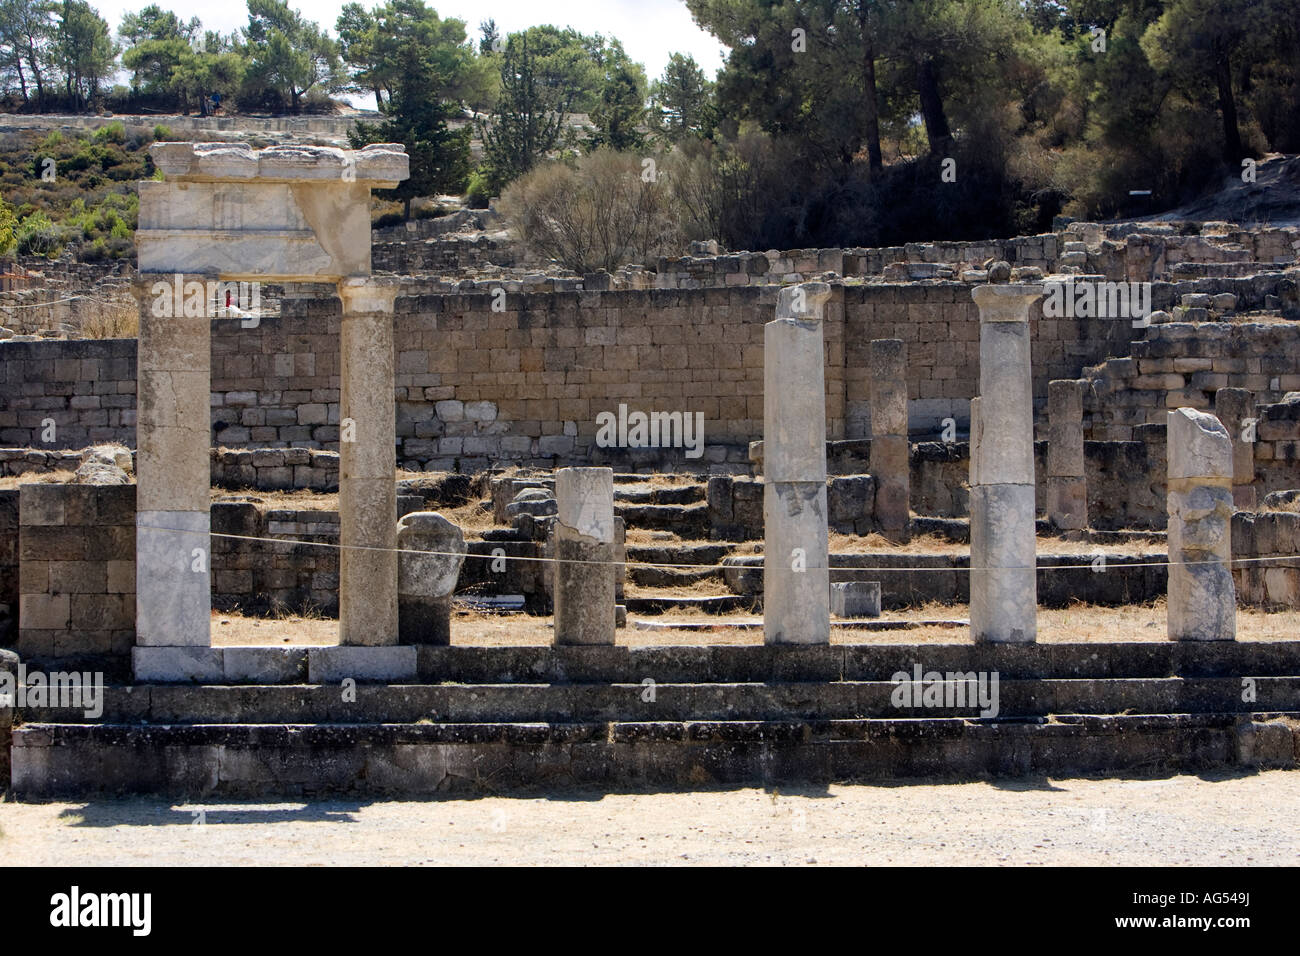 Ancient Kameiros, ruined dwellings and temples dating back to the Hellenistic period on the Greek island of Rhodes - Stock Image